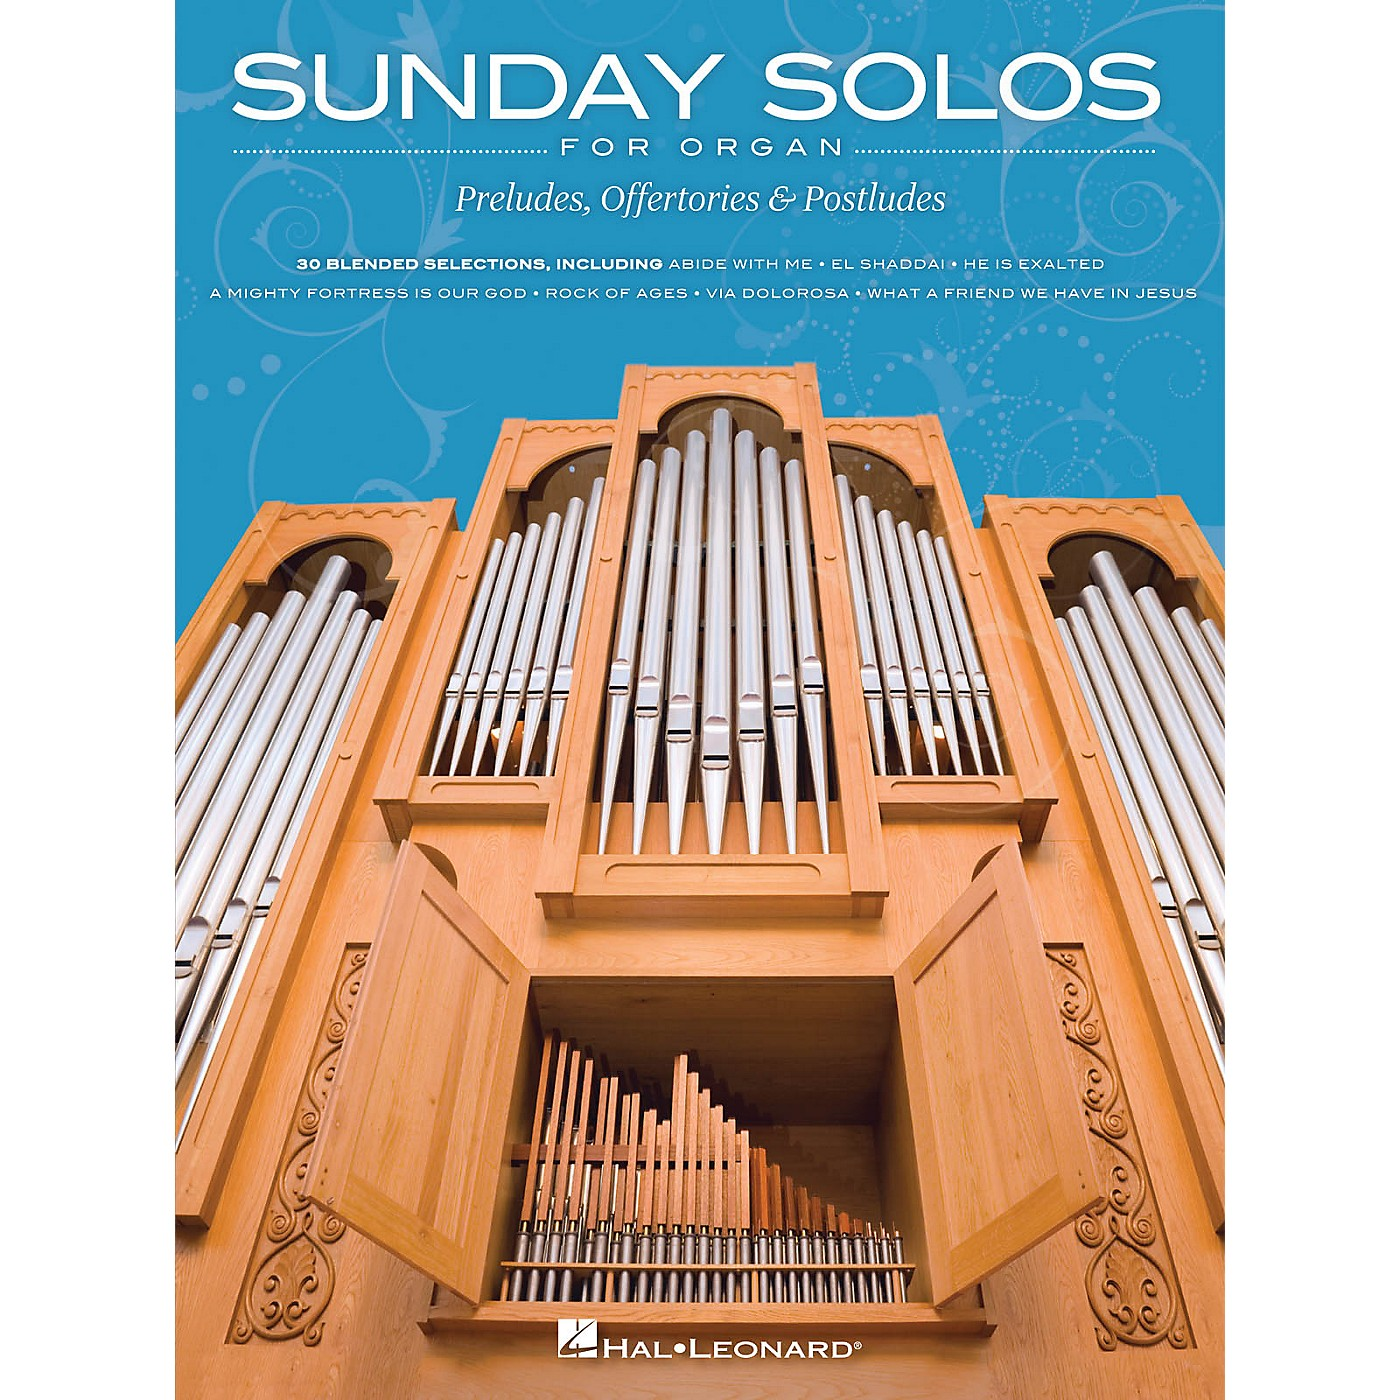 Hal Leonard Sunday Solos for Organ (Preludes, Offertories & Postludes) Organ Folio Series Softcover thumbnail